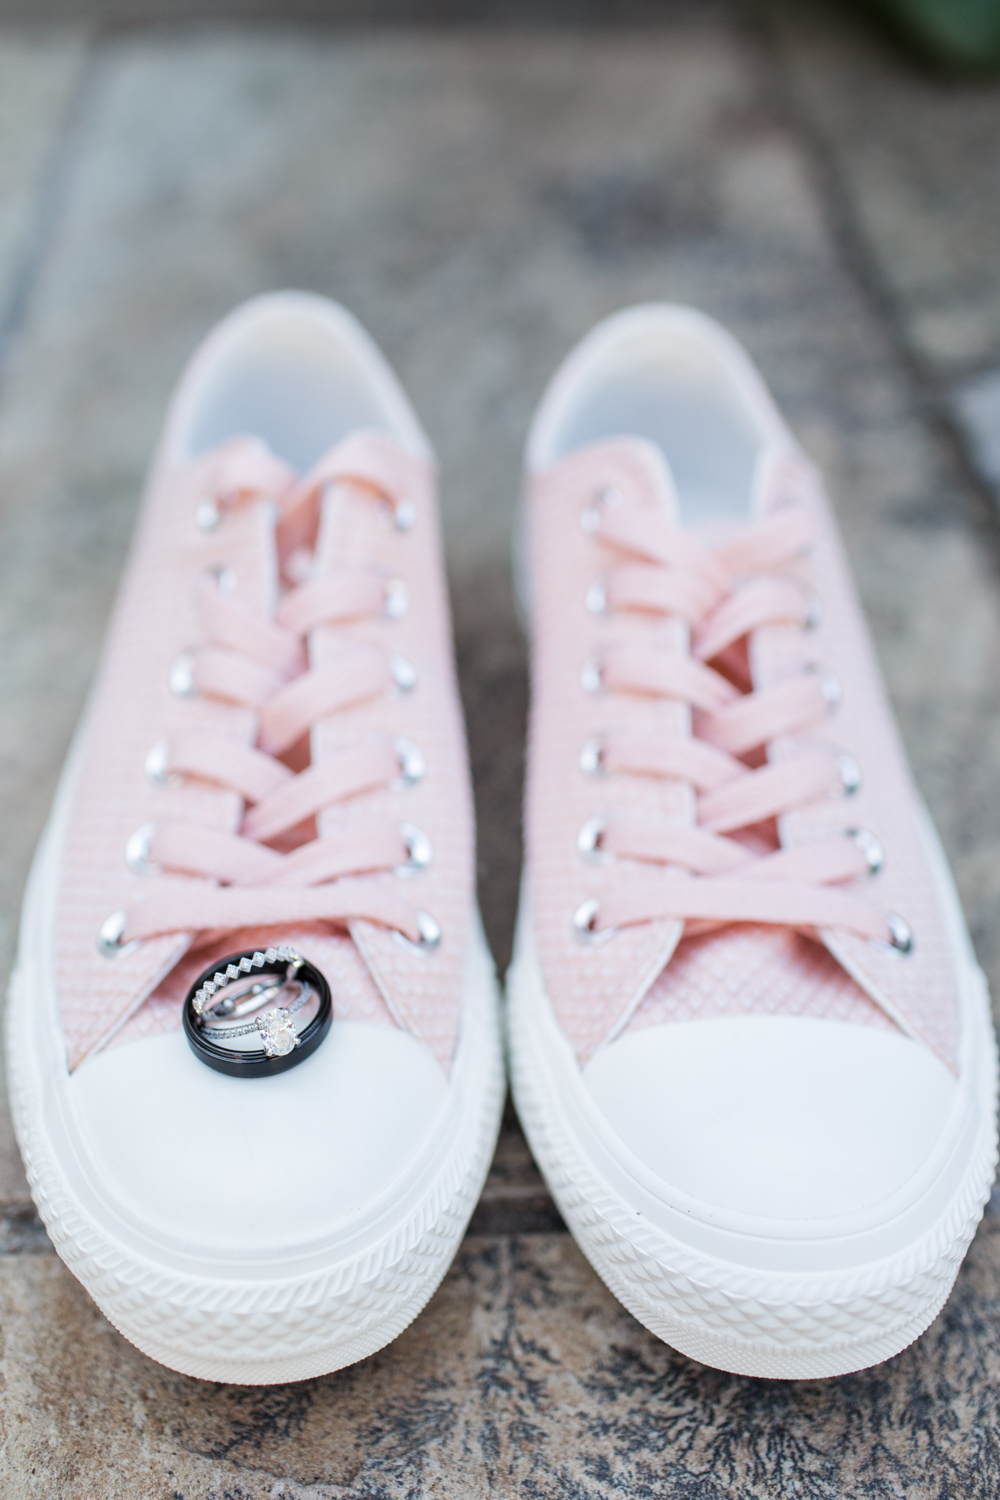 Pink Converse as wedding shoes with a bride and groom ring groom's ring is black